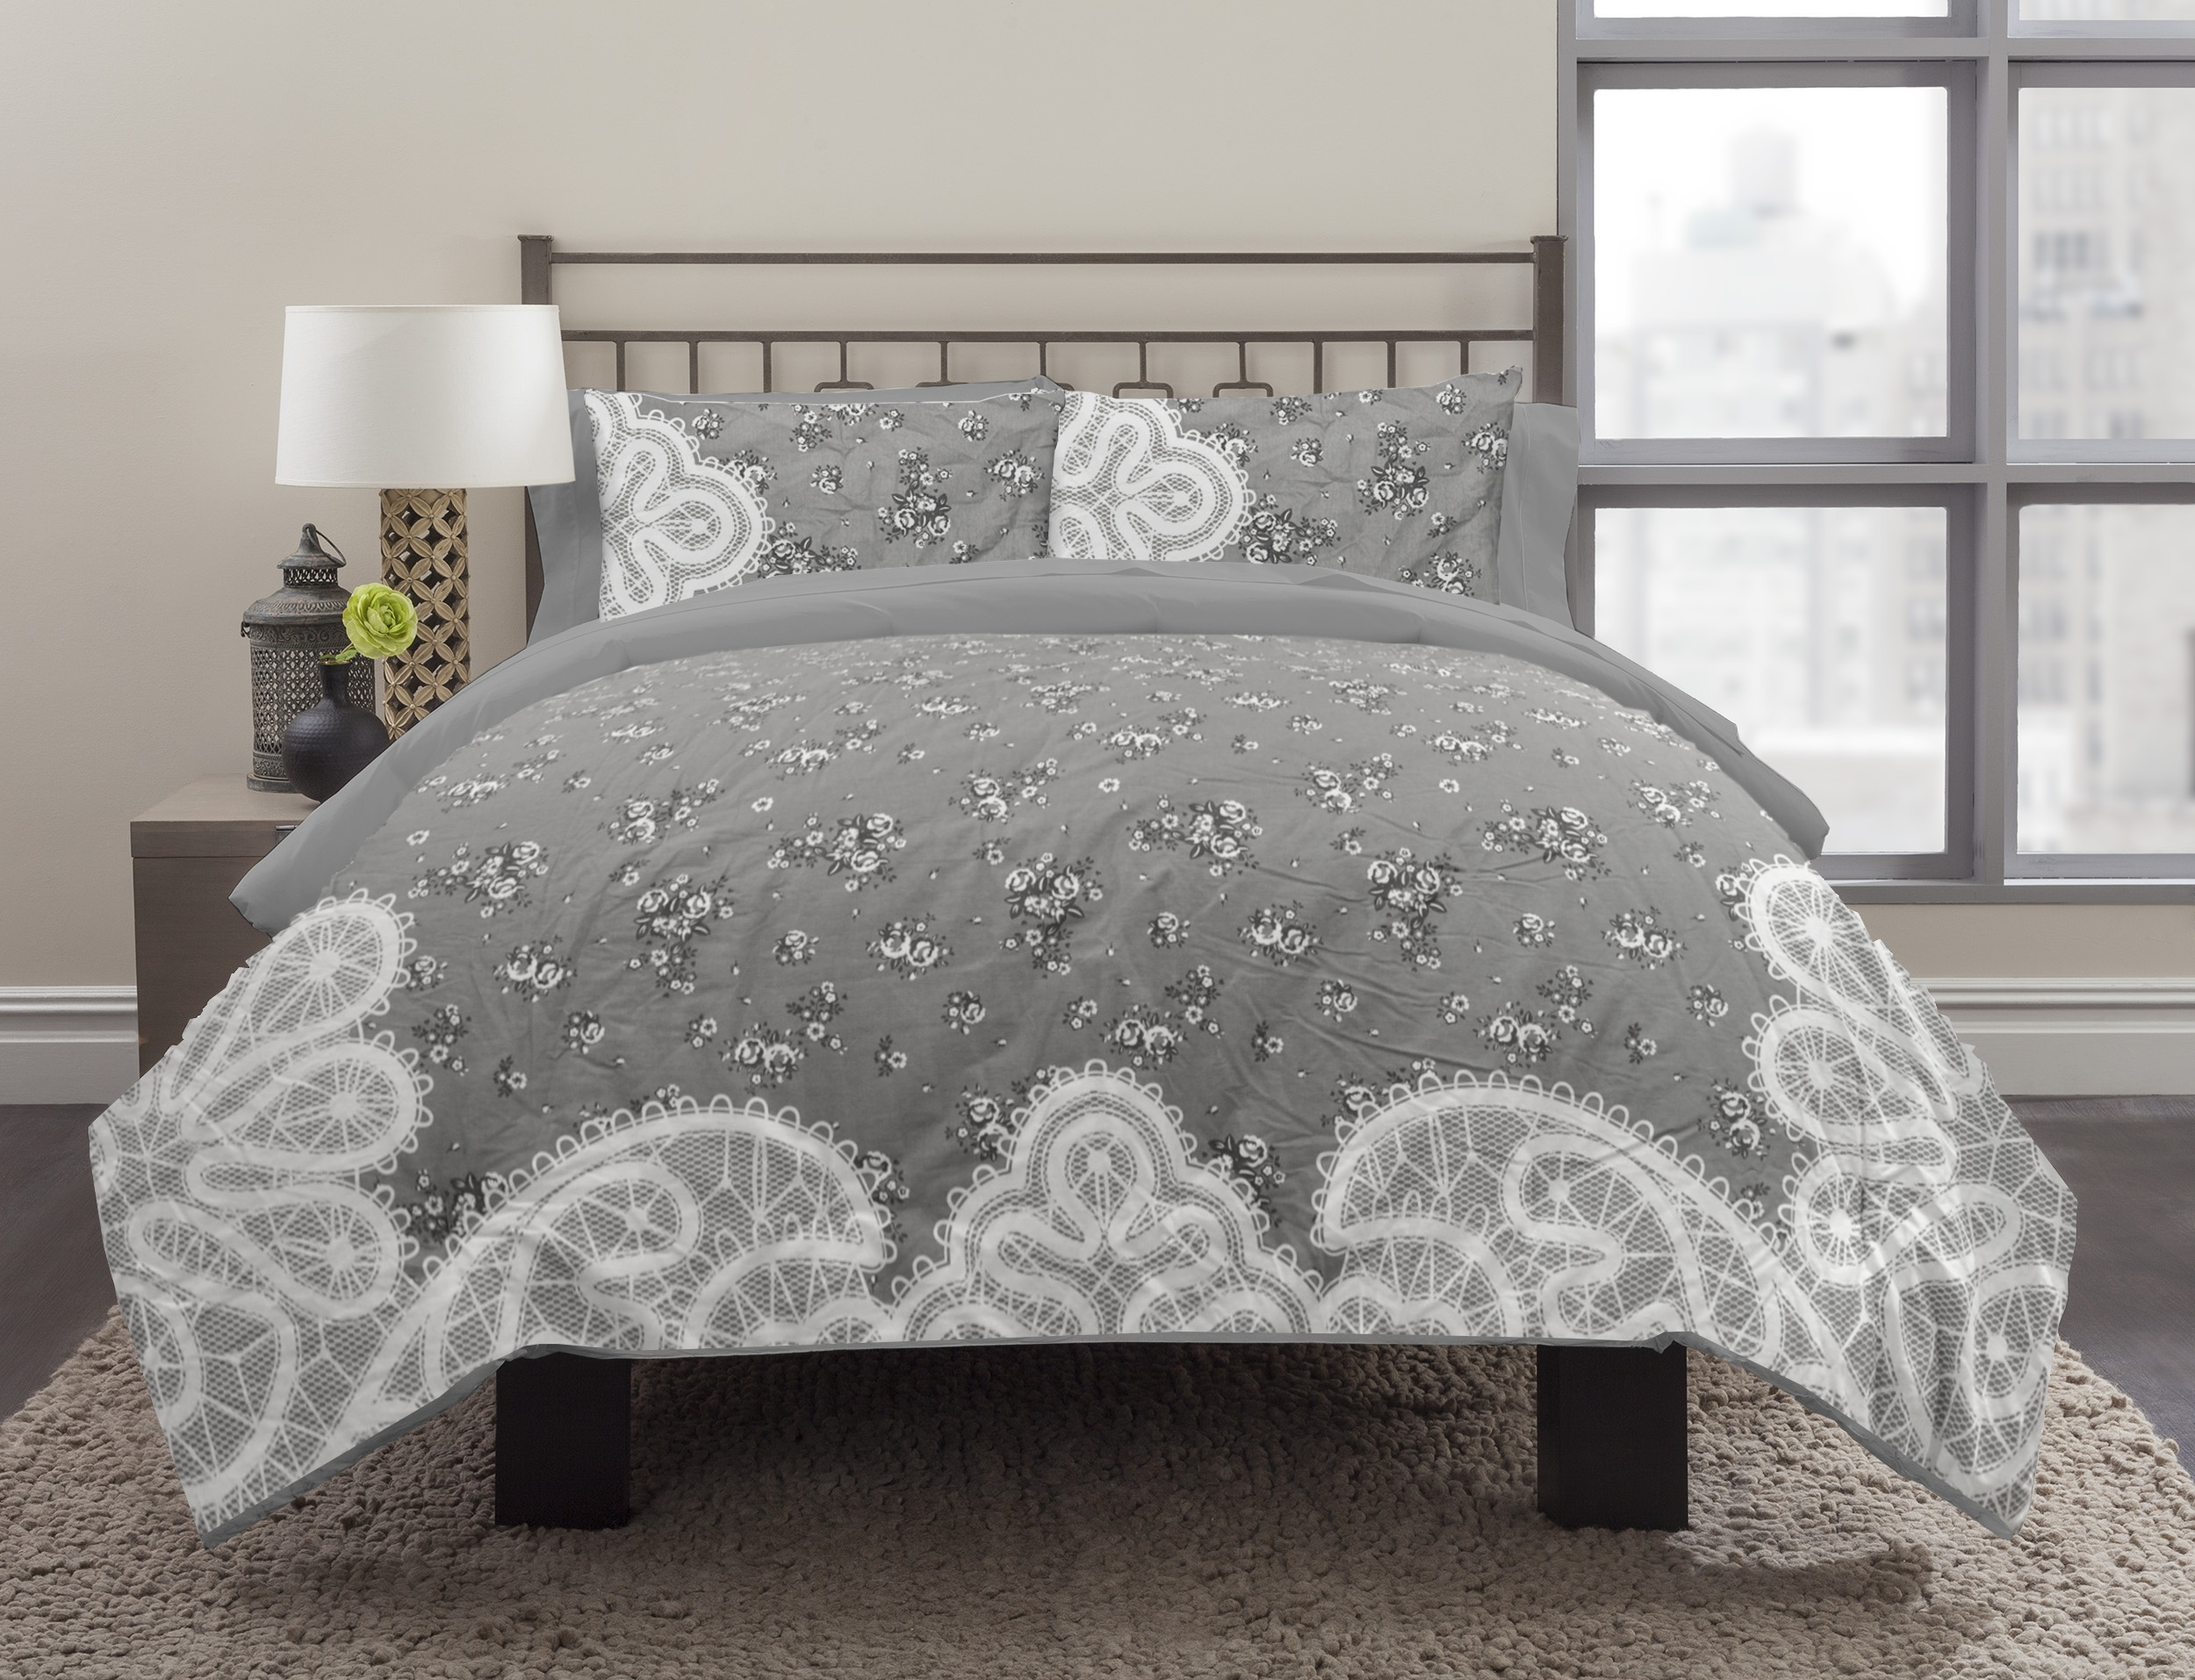 Image of Republic 3-Piece Vintage Lace Queen Duvet Cover Set, Gray